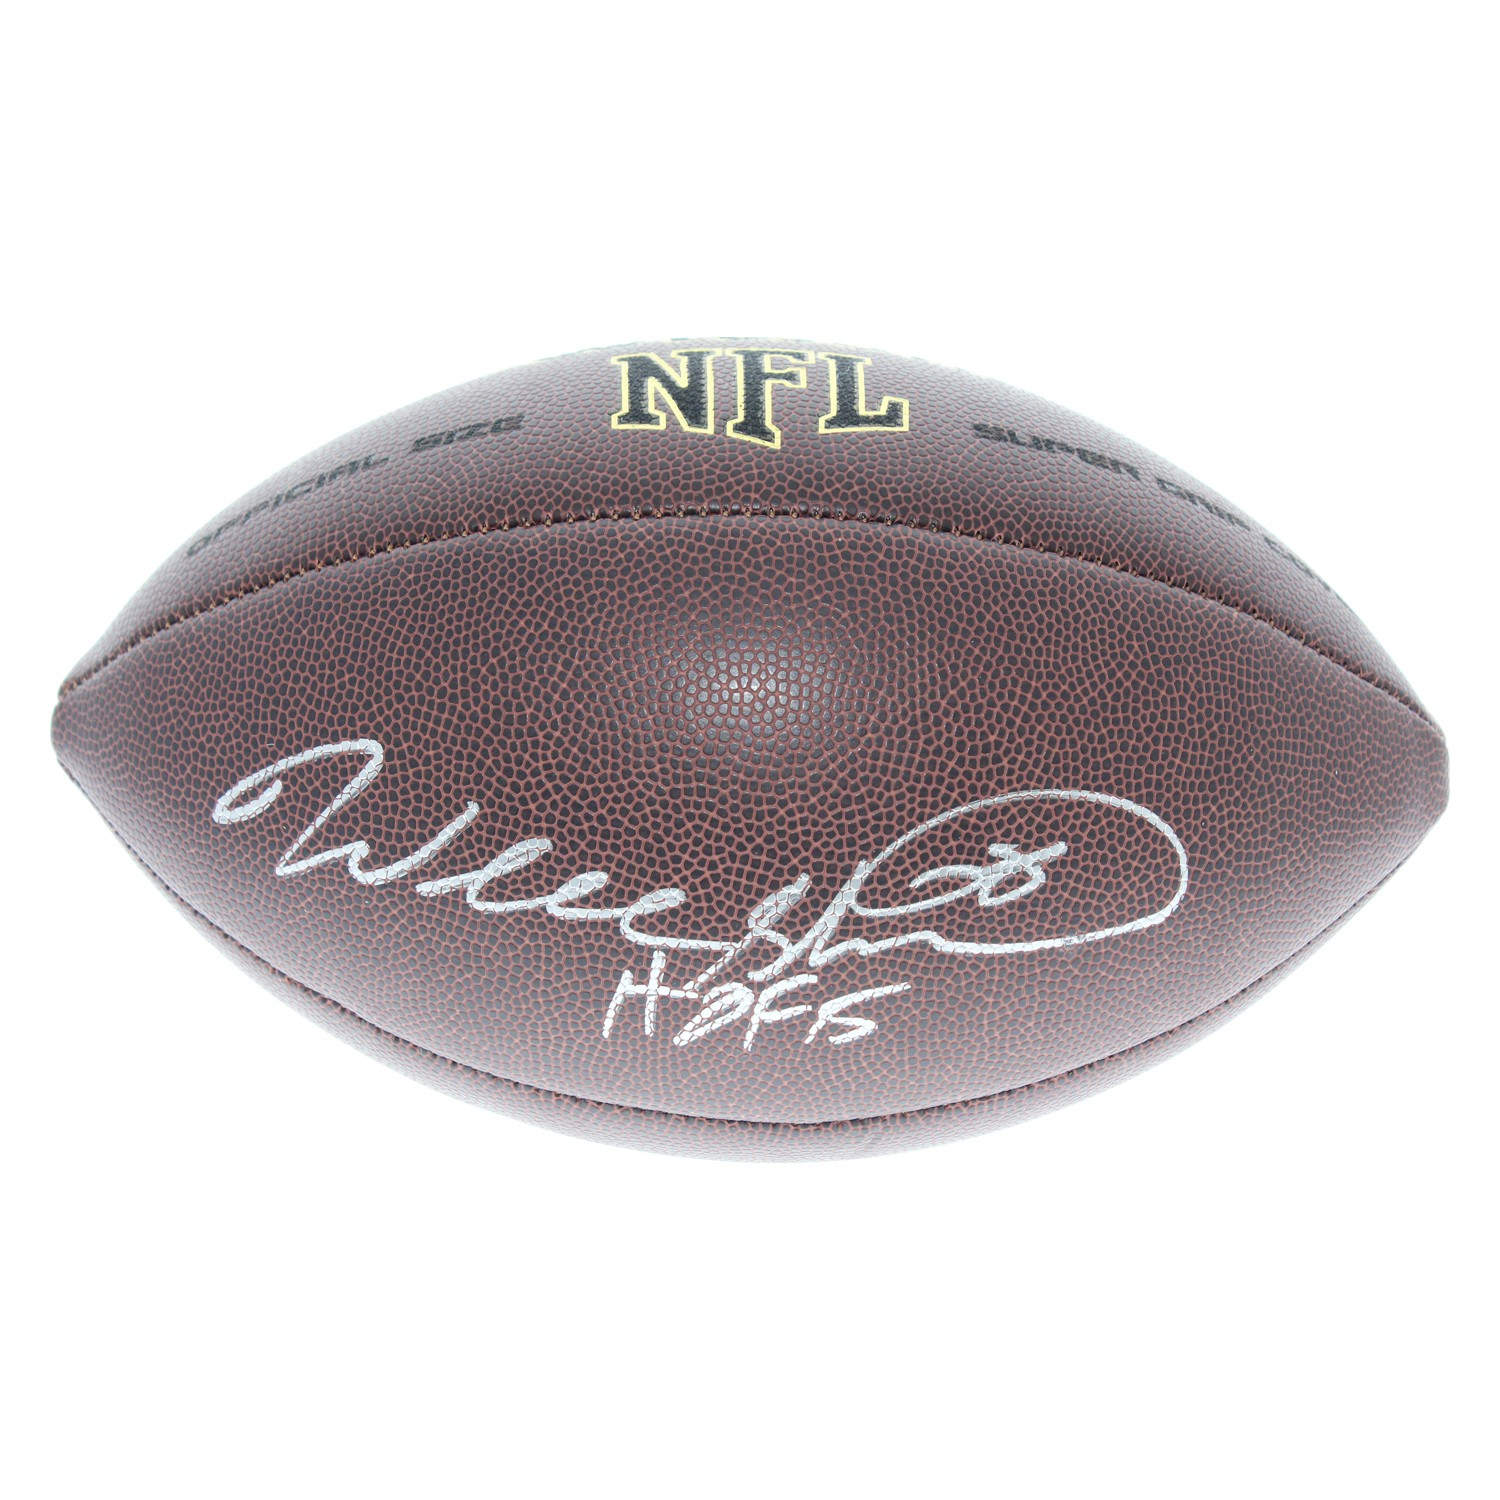 Will Shields Kansas City Chiefs Autographed Signed Wilson NFL Super Grip  Football - Certified Authentic d6adf29f8